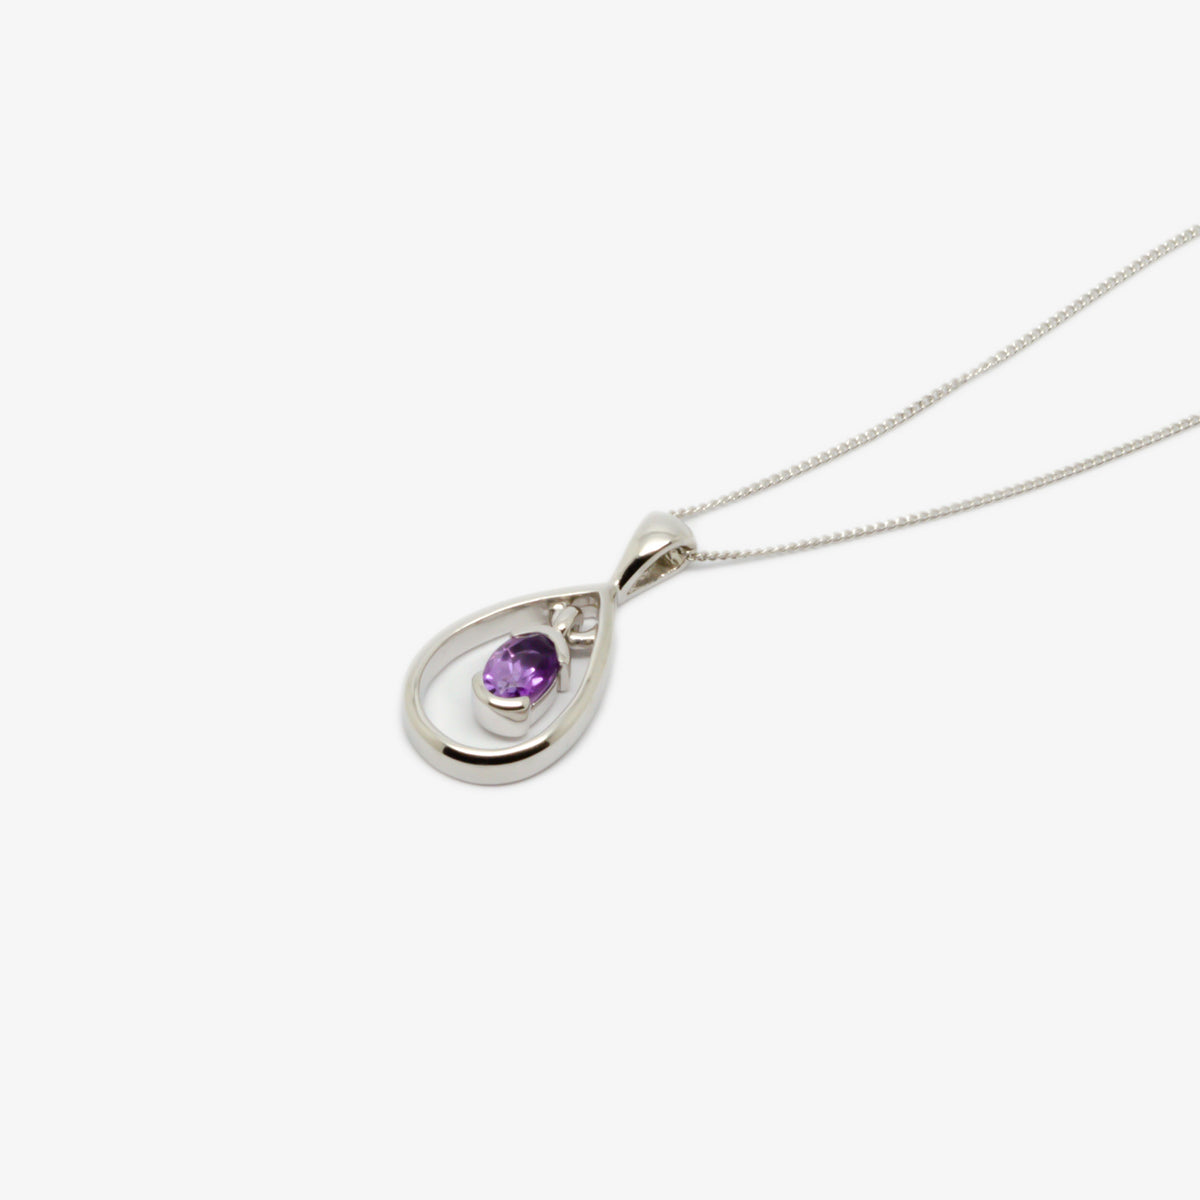 Close-up side view picture of the amethyst and silver pendant necklace.